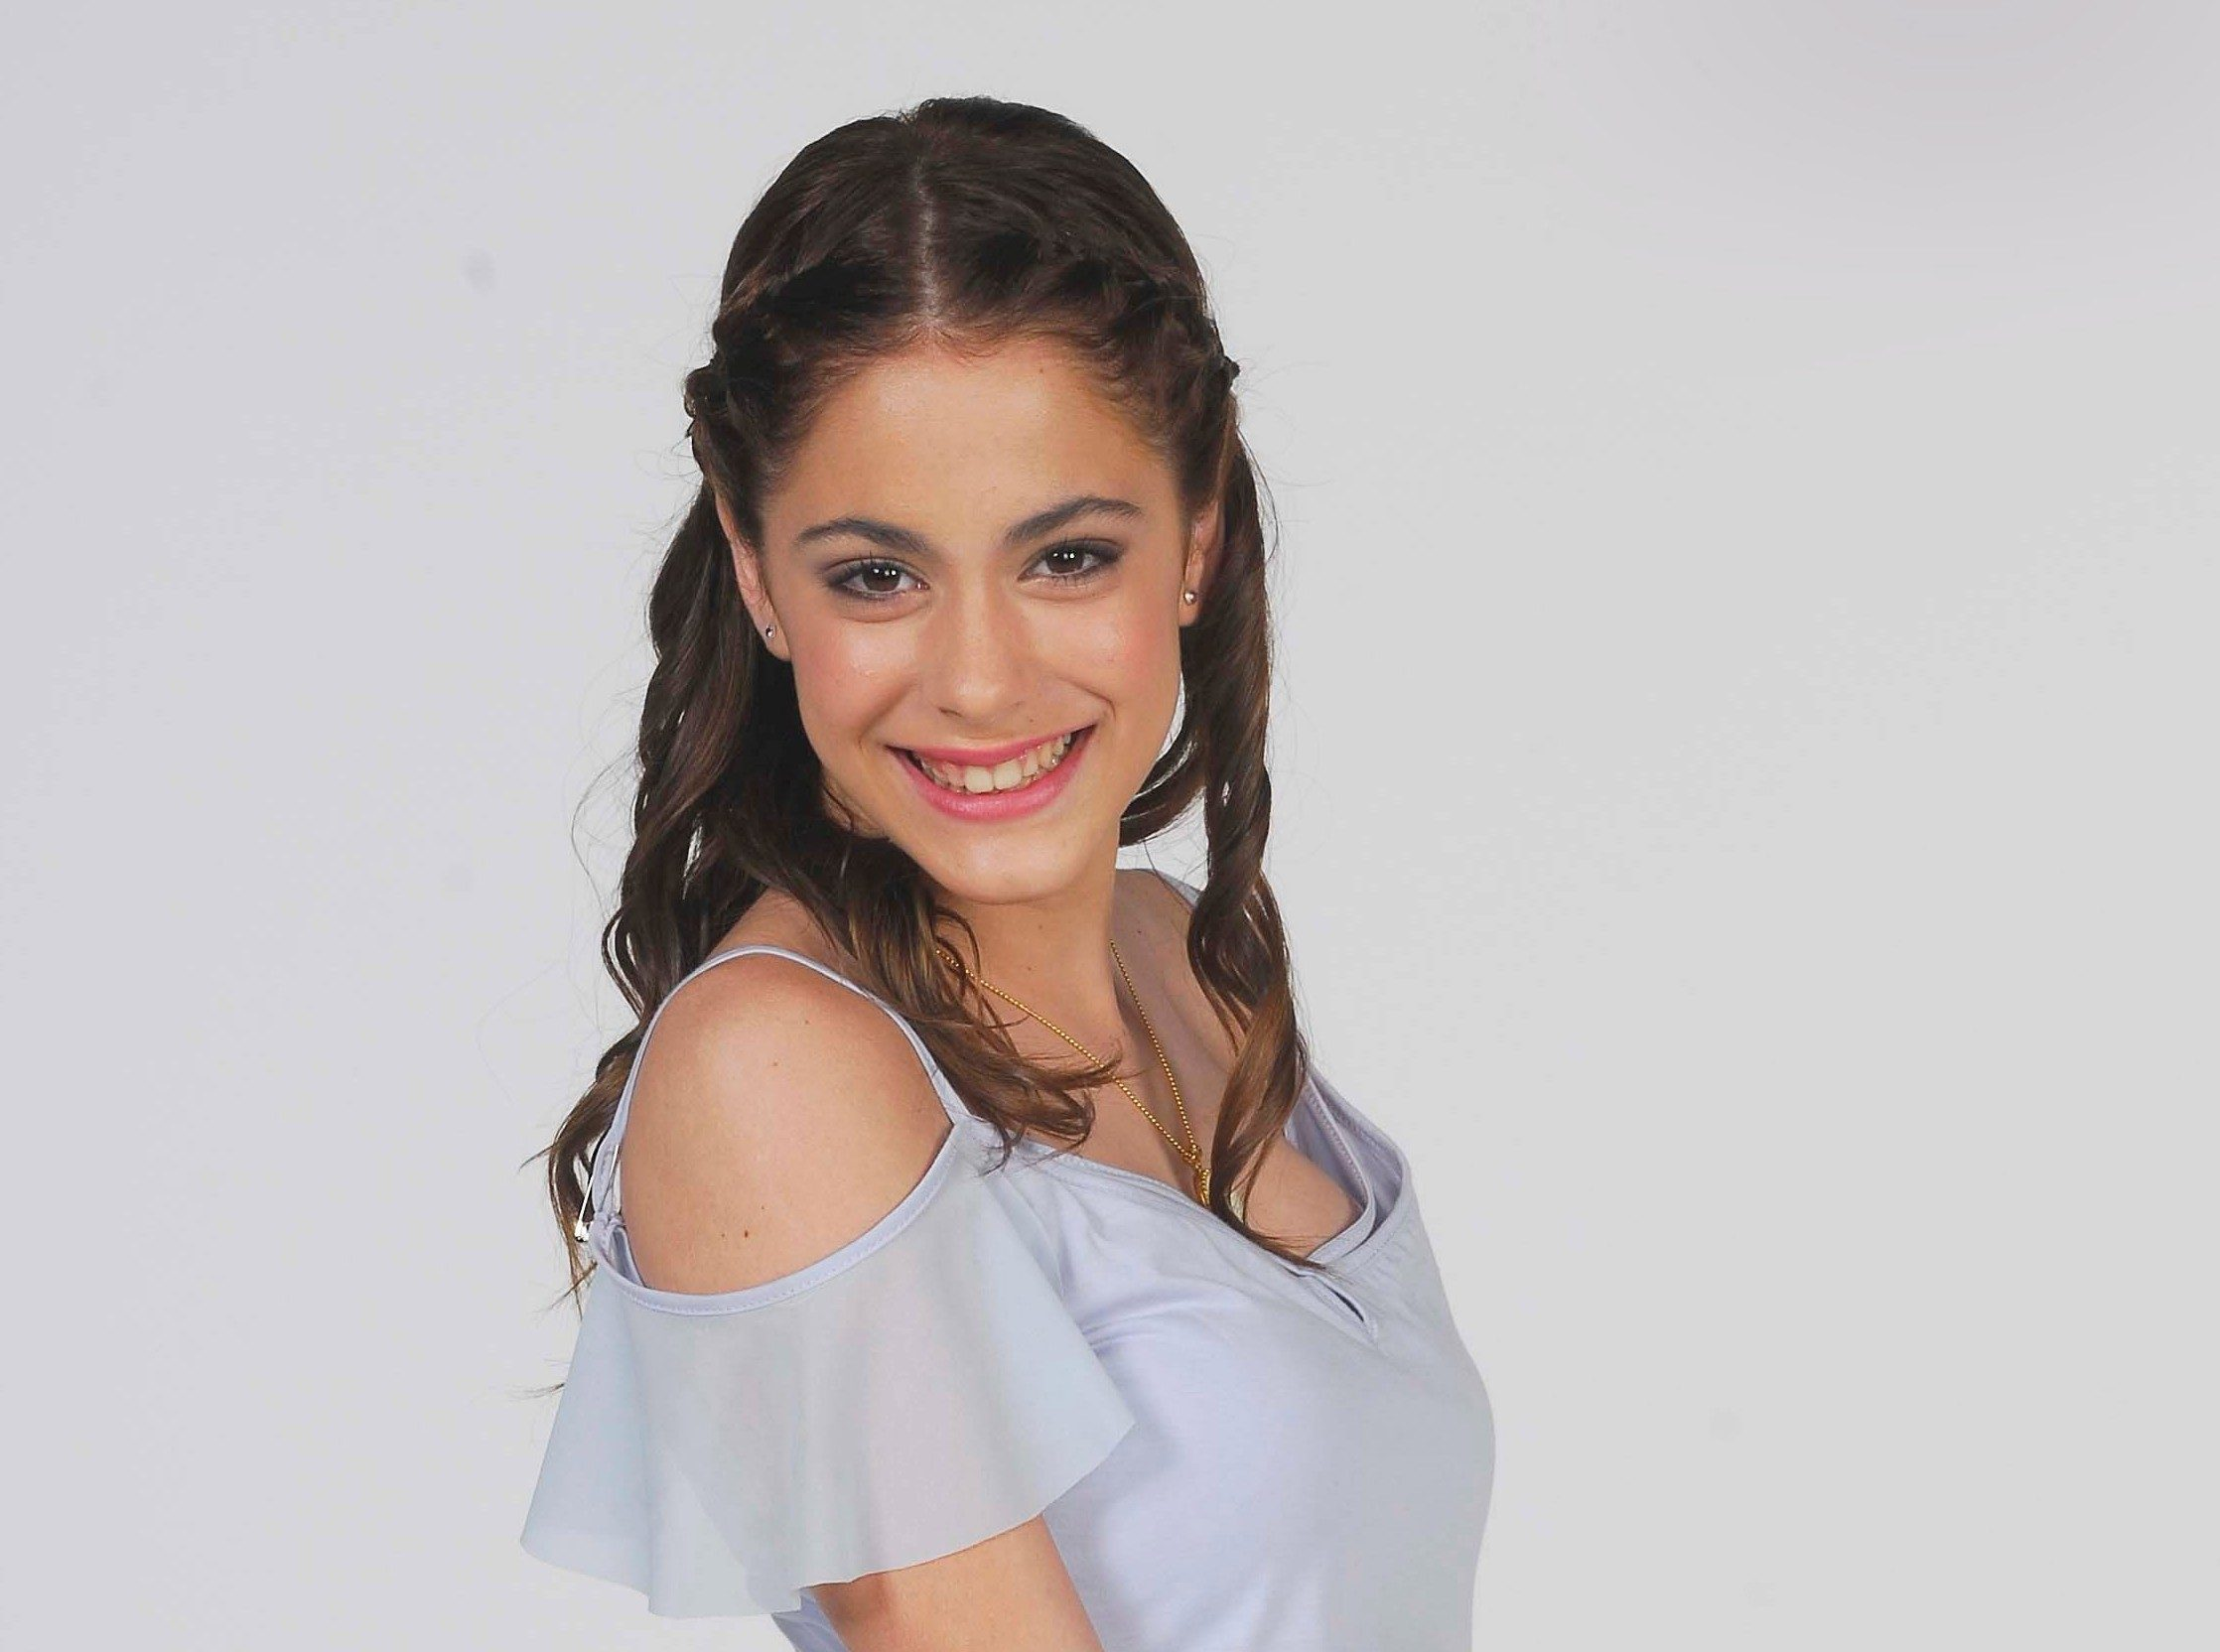 Martina Stoessel Hd Background